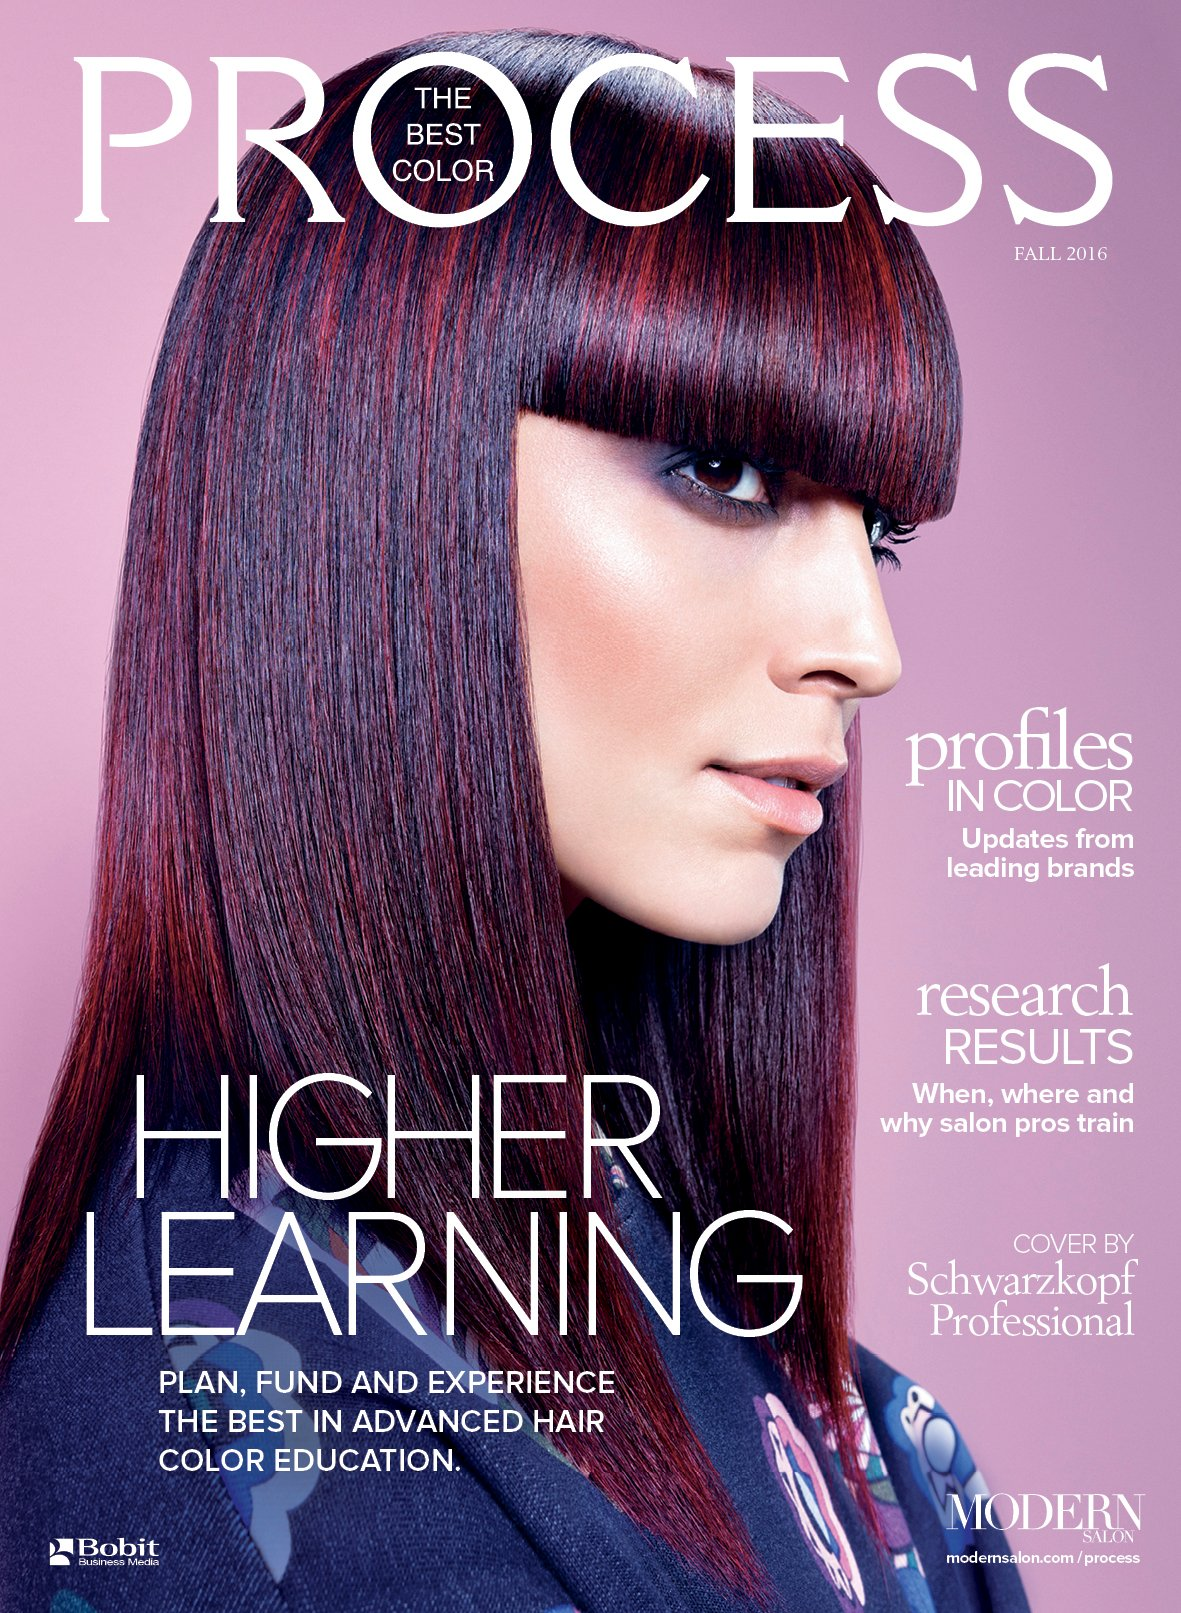 Schwarzkopf Professional Education Engages and Inspires